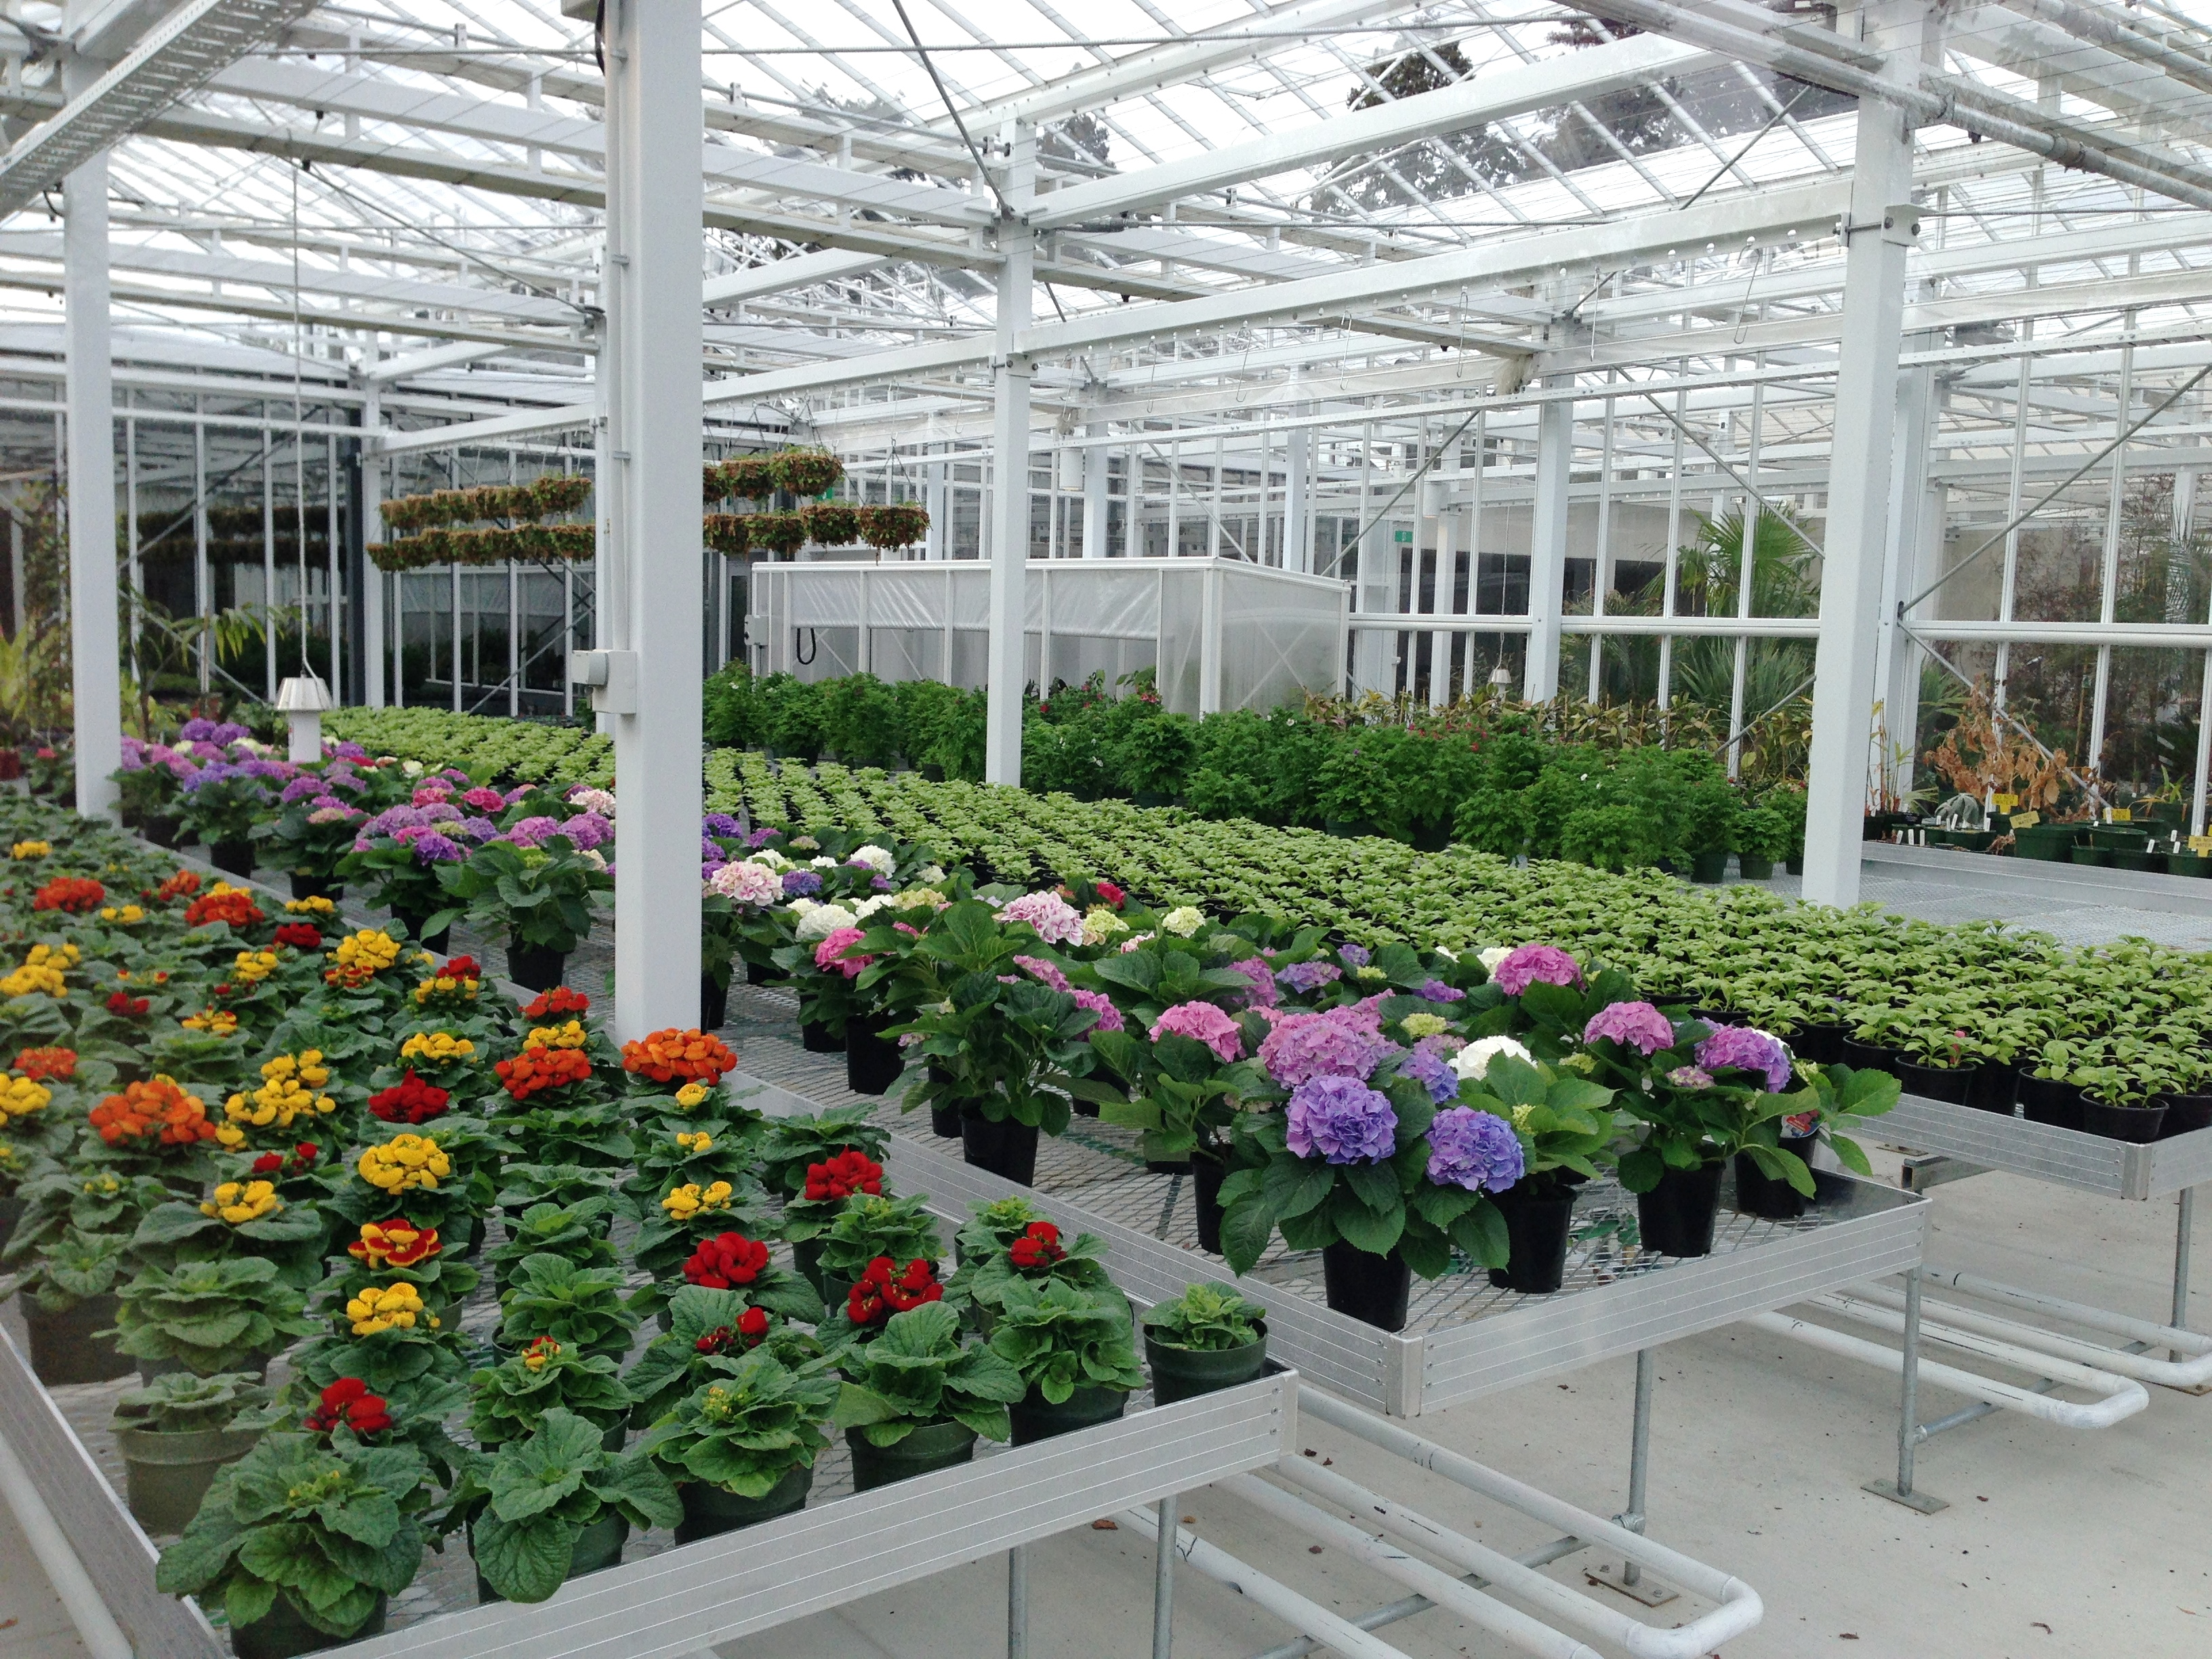 Propagation in one of the glass houses